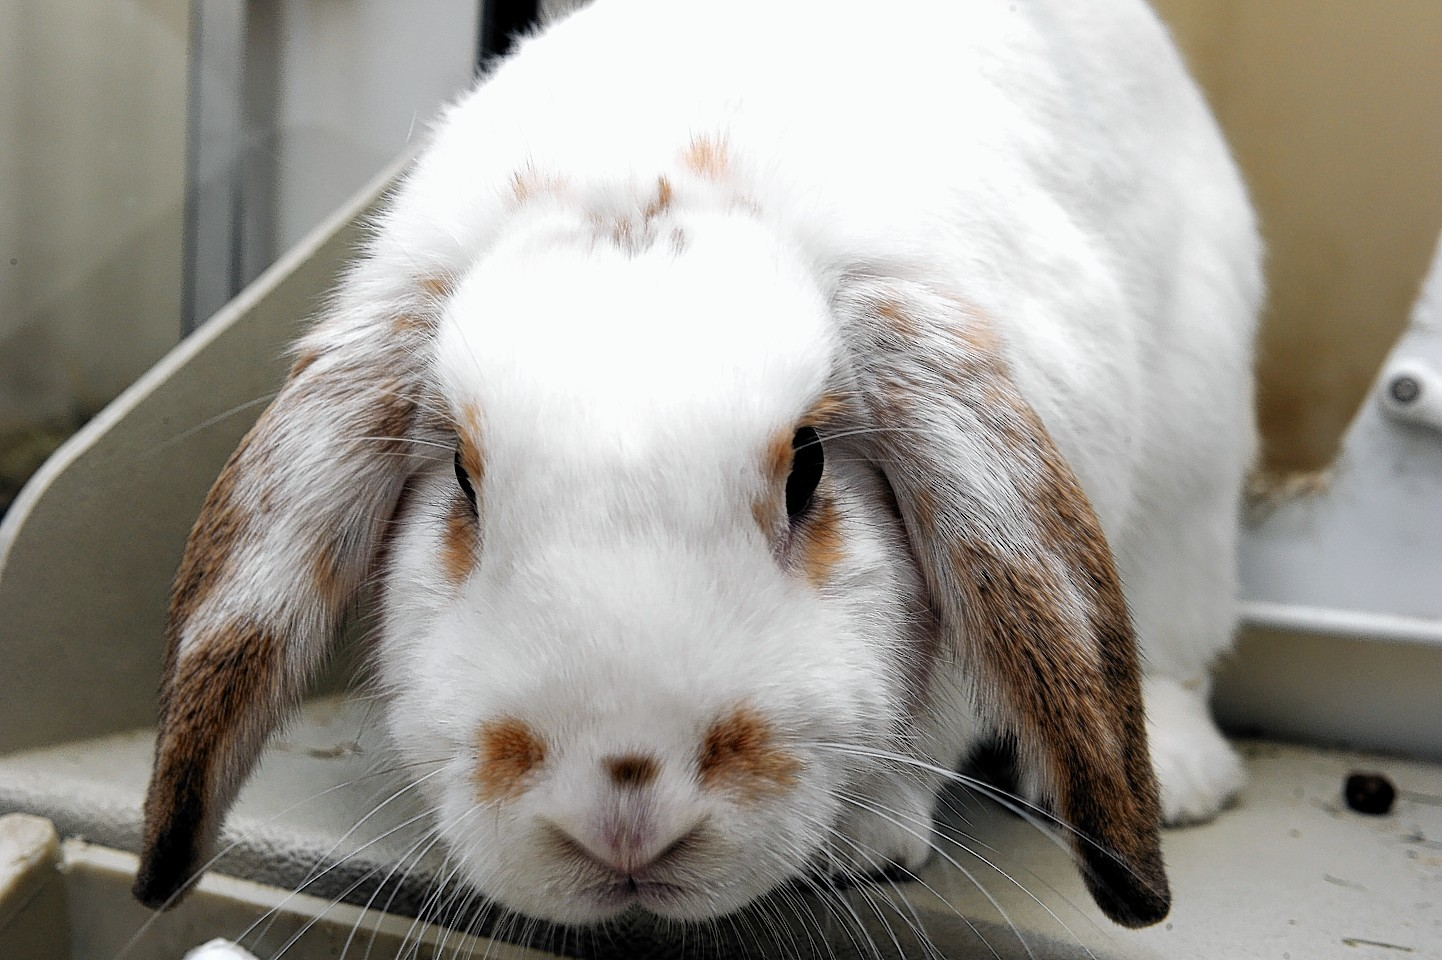 The pet rabbit is believed to have been stolen from its hutch